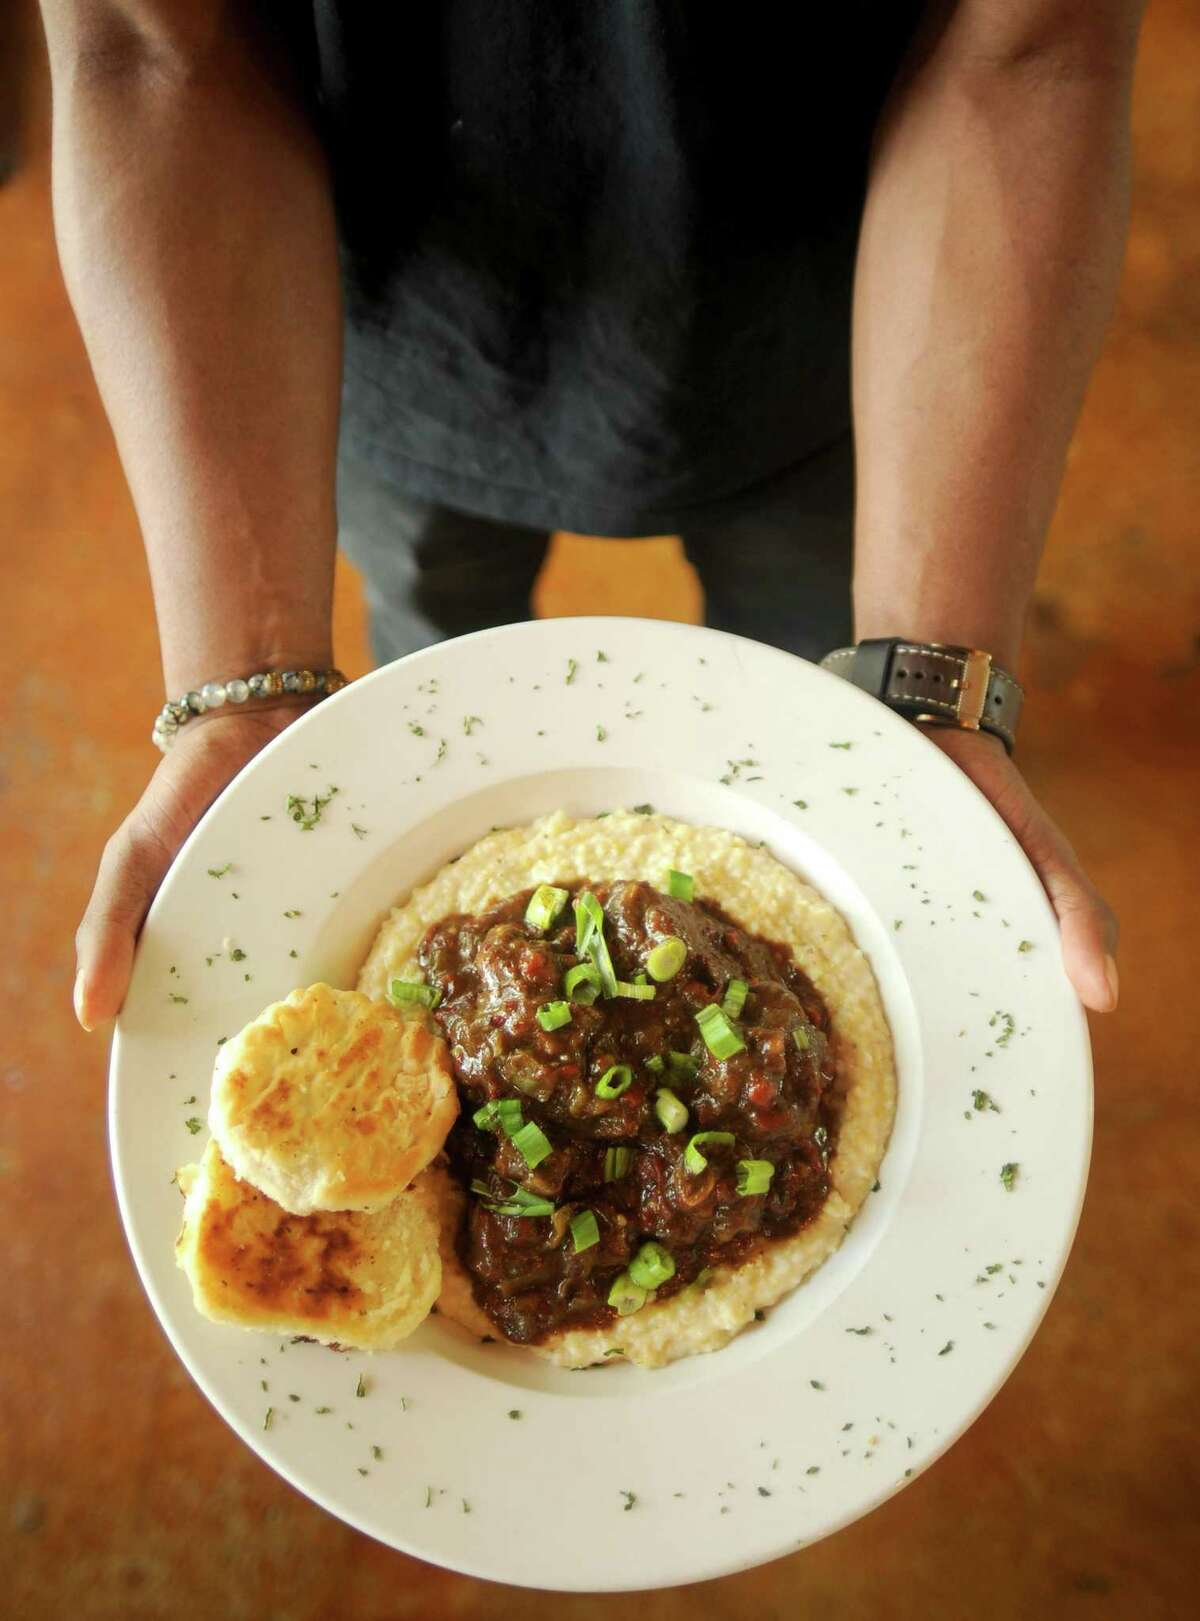 Gregory Adams, whose family opened The South Chicken & Waffles in late 2017, shows off the restaurant's braised oxtails and grits.